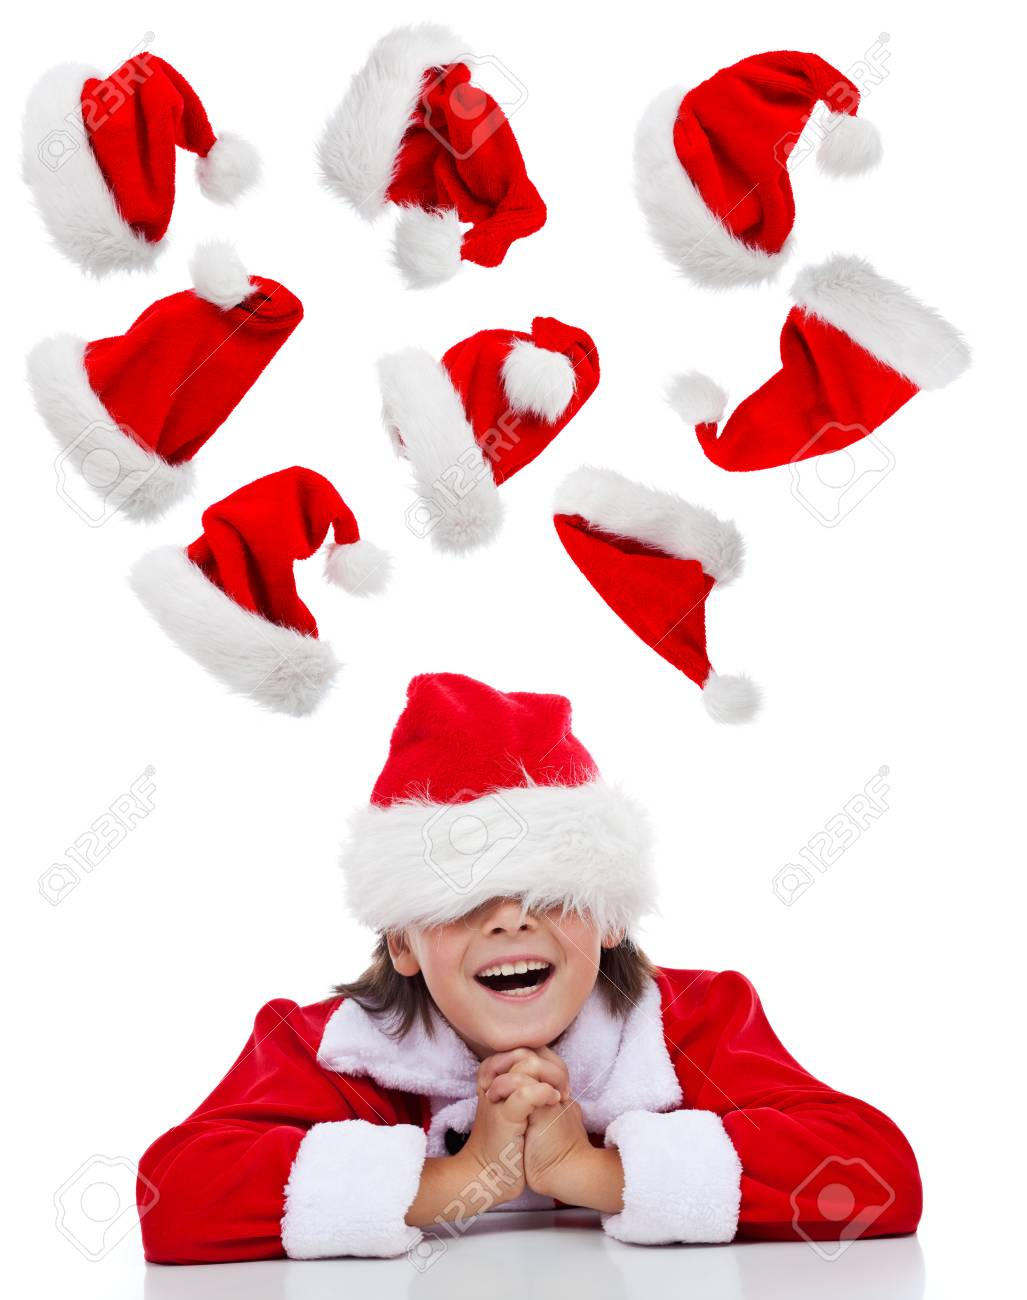 Christmas Thoughts.Happy Christmas Thoughts Concept With Santa Boy Having Fun